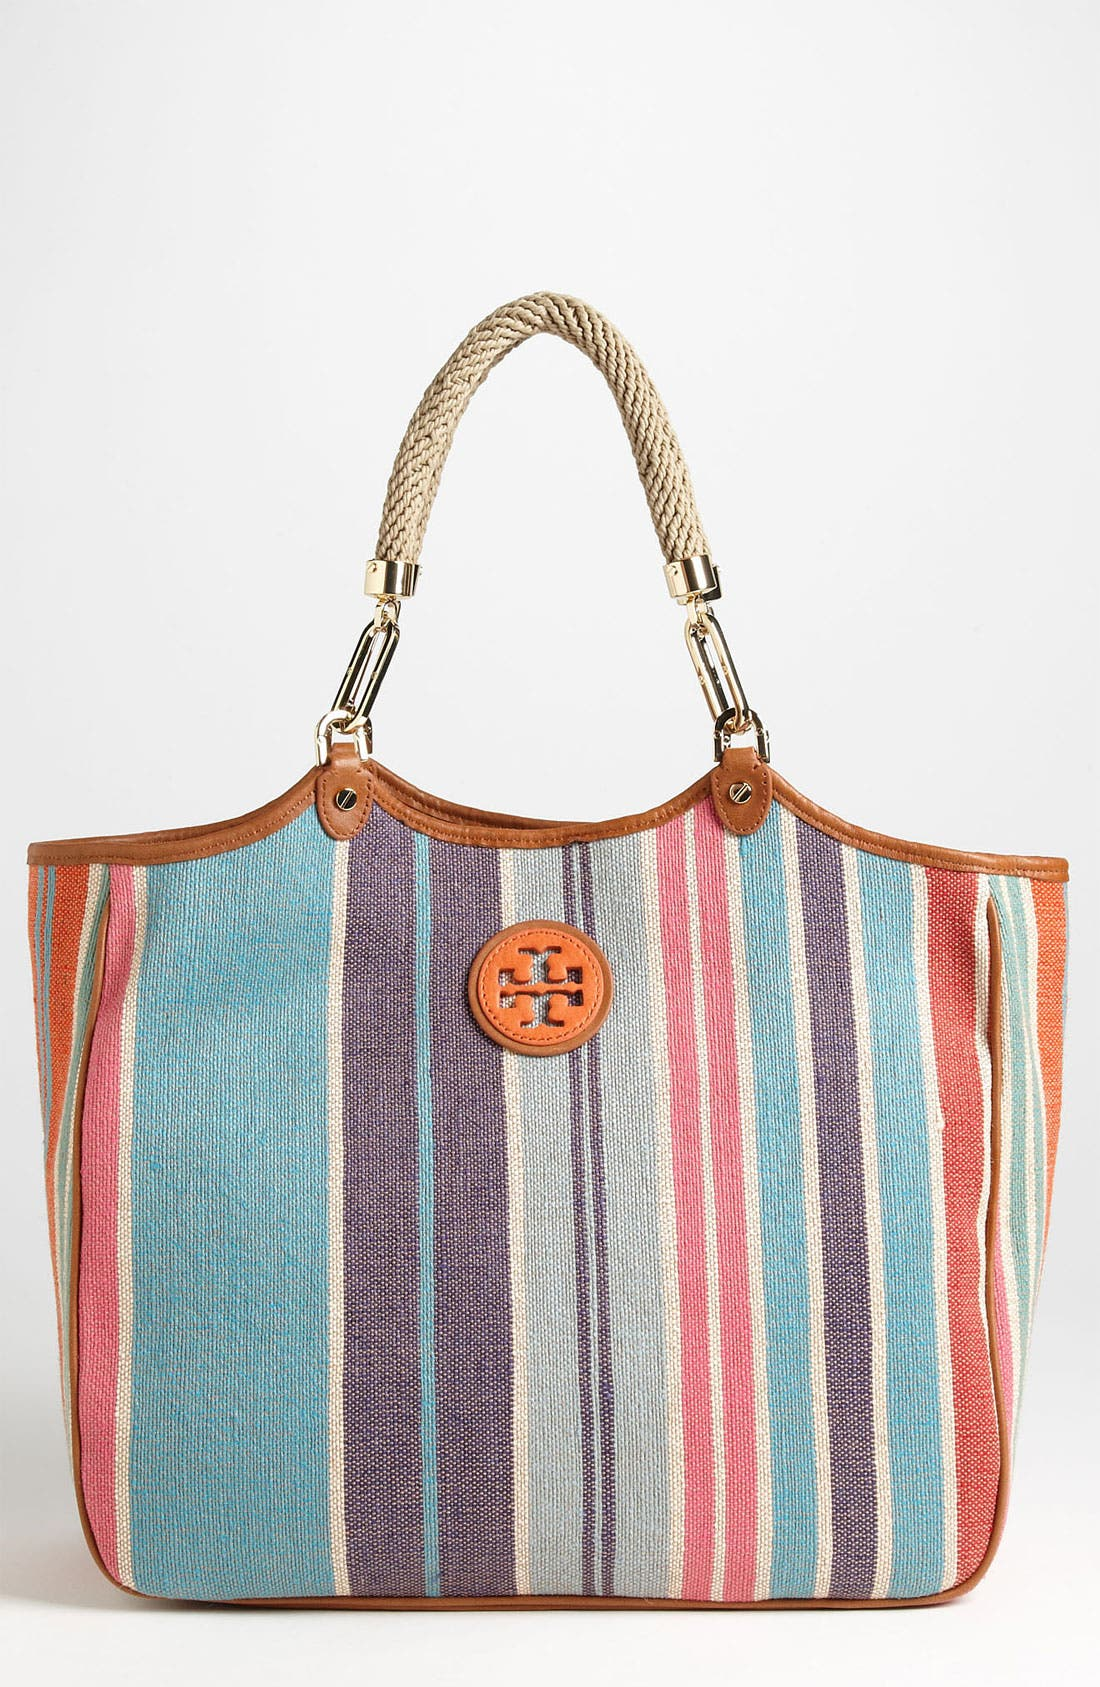 Main Image - Tory Burch 'Baja Channing' Tote